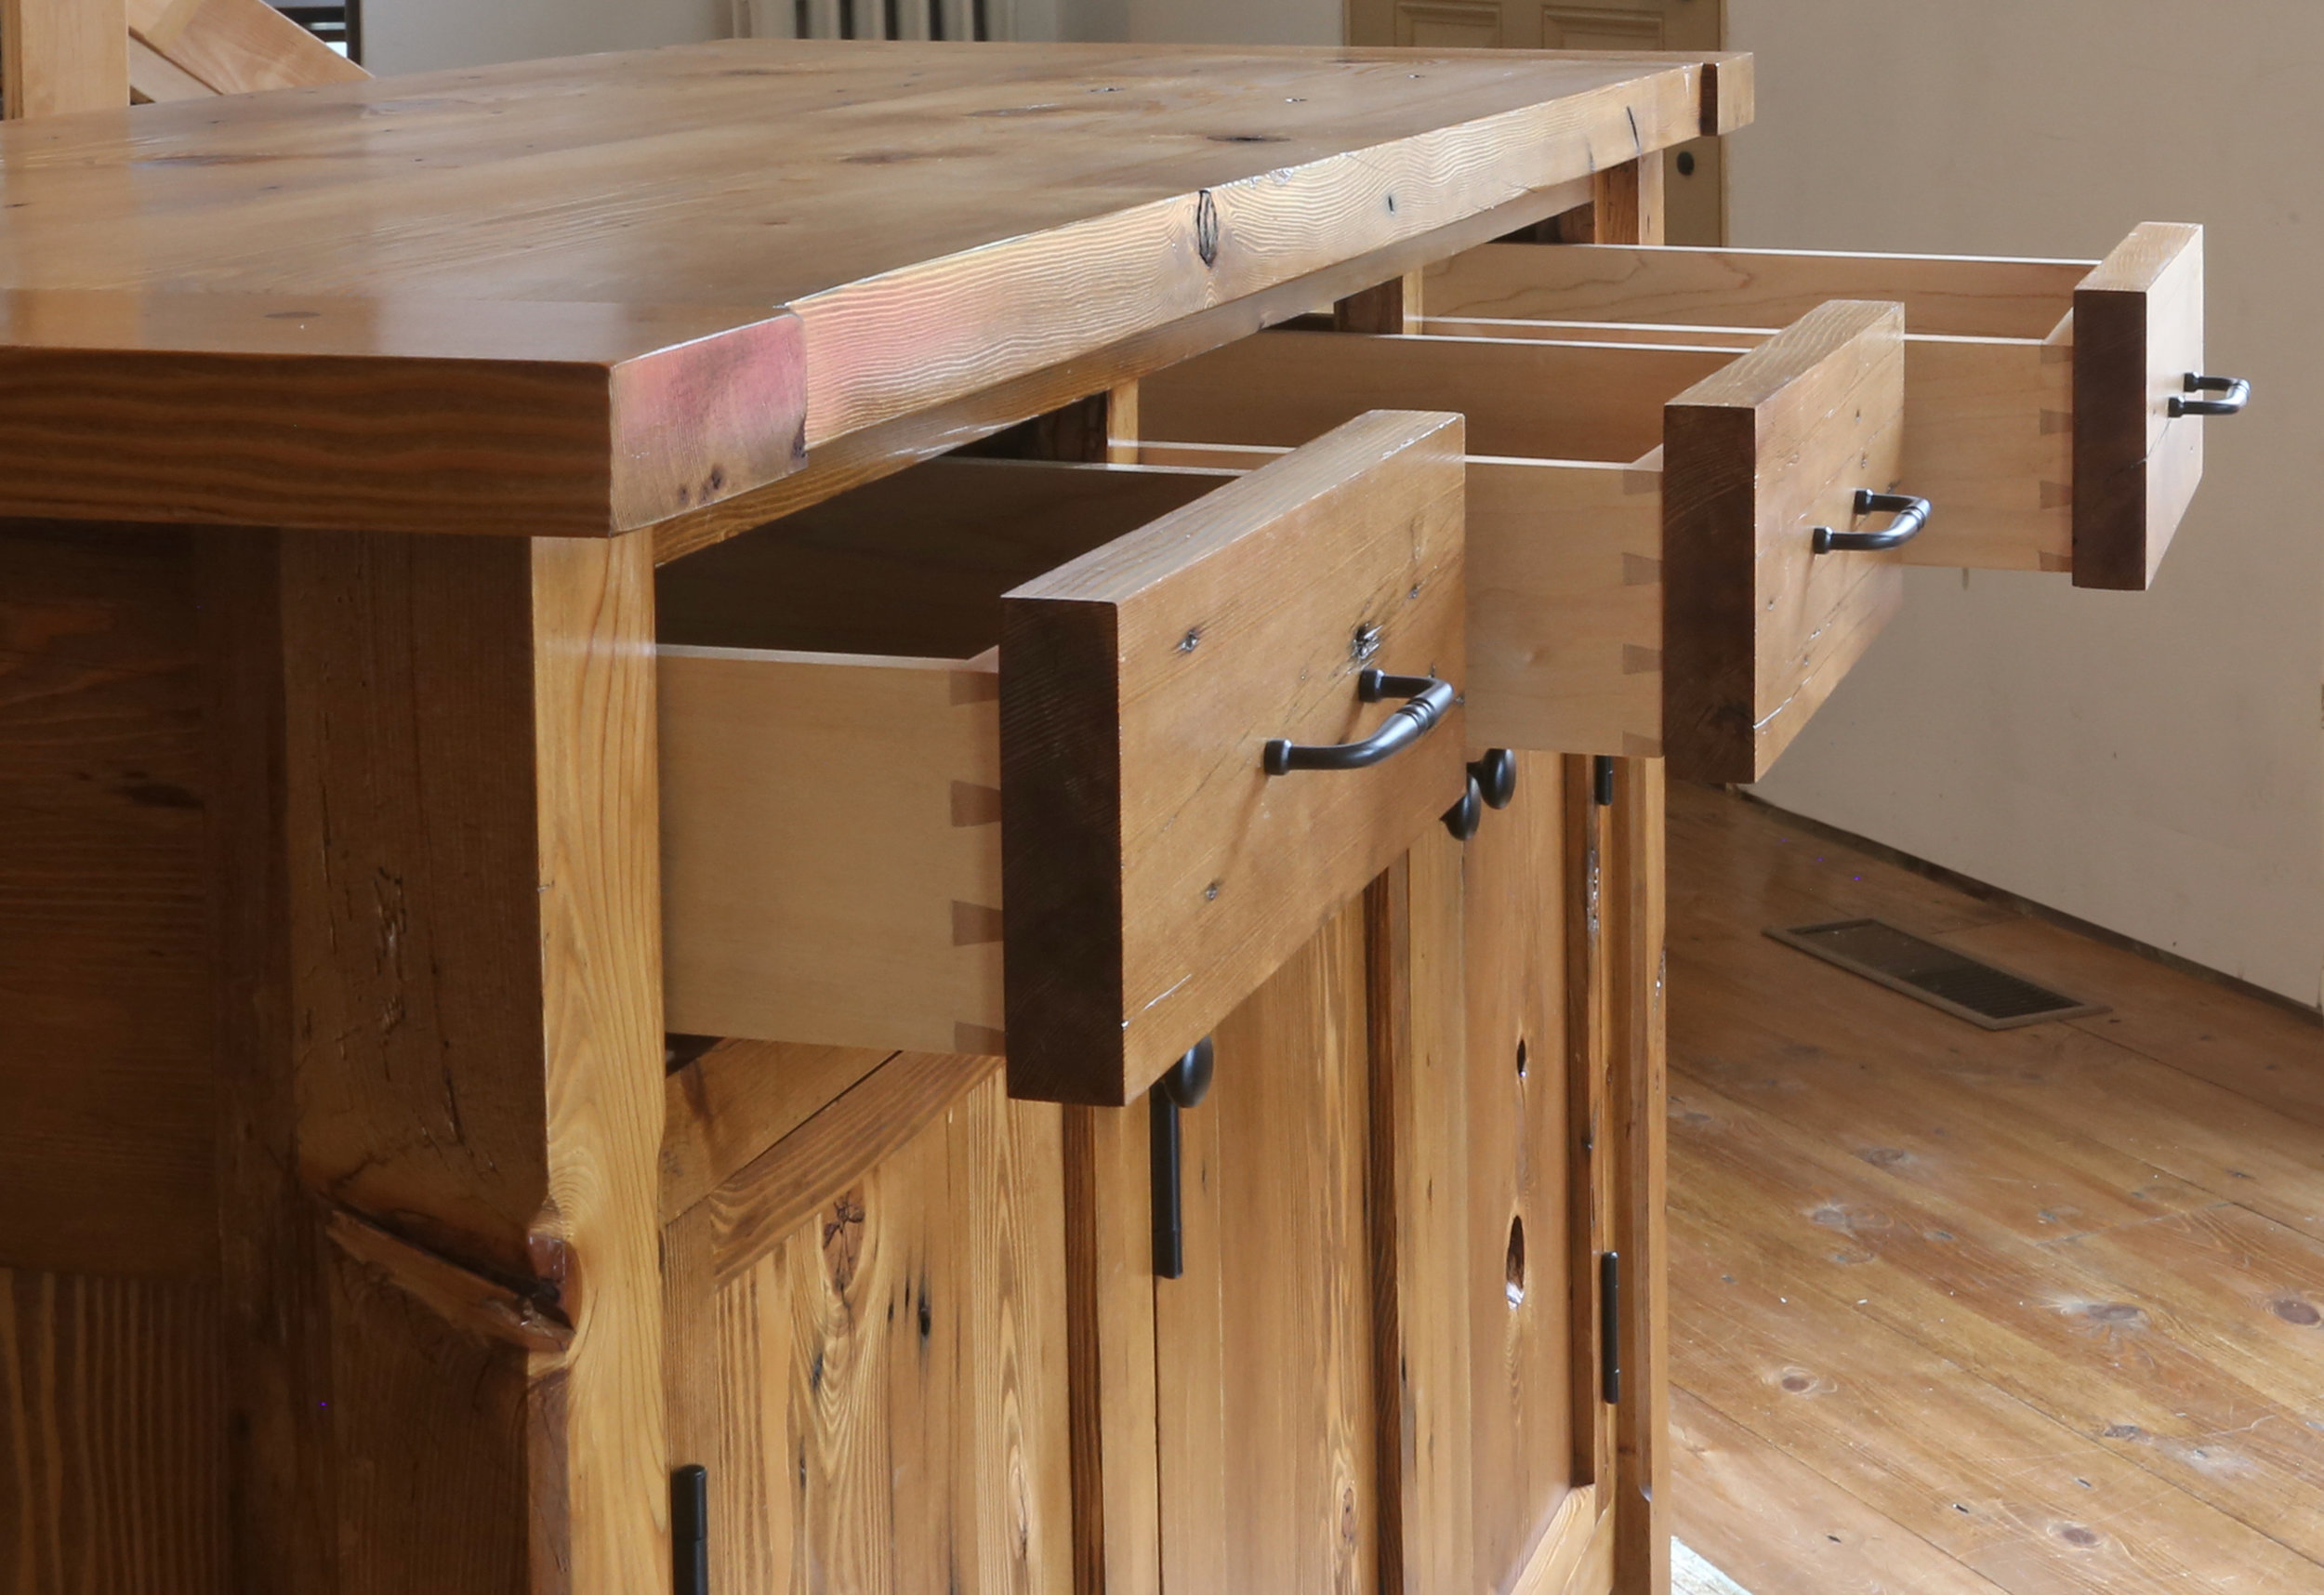 Looking down the dovetailed drawers. I had orignally picked out different drawer pulls, but when they arrived they didn't have the feel I wanted. I opted for larger, heavier pulls that worked better for this piece. Little details can make a big impact on a project like this.